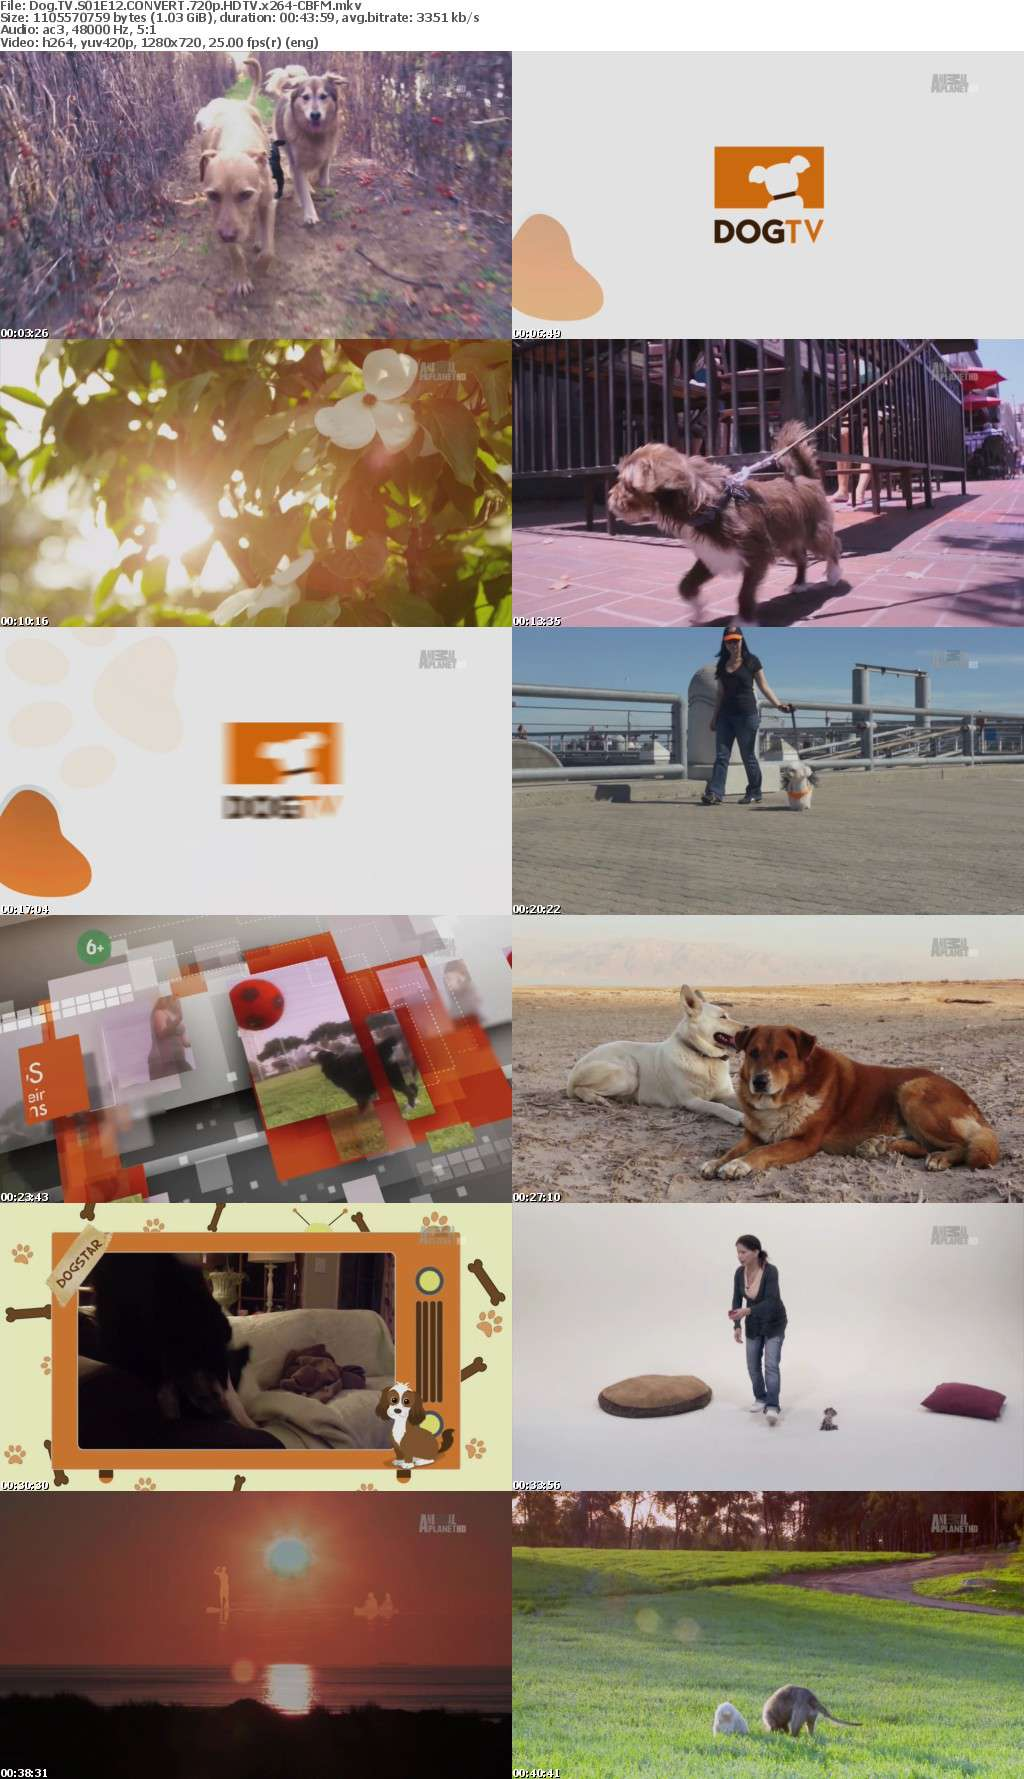 Dog TV S01E12 CONVERT 720p HDTV x264-CBFM